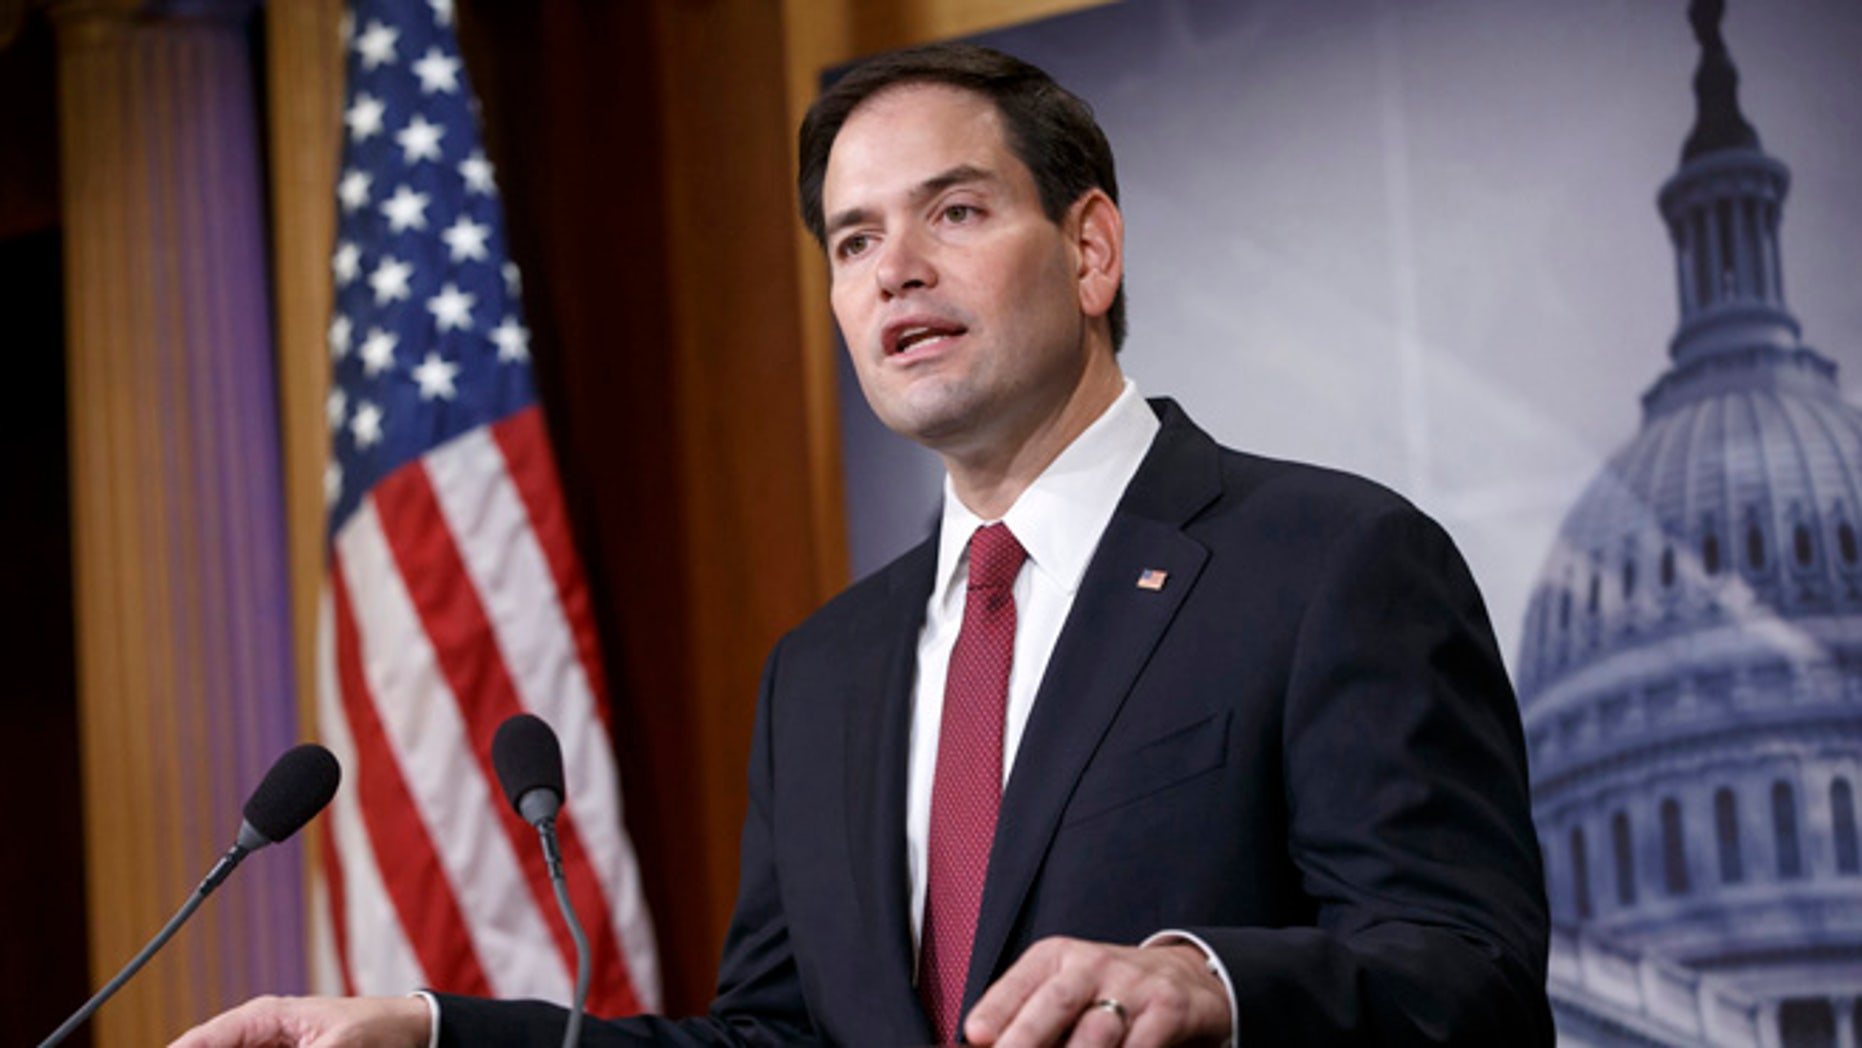 FILE - In this Dec. 17, 2014 file photo, Sen. Marco Rubio, R-Fla. speaks on Capitol Hill in Washington. Rubio seems to be moving toward a bid for the Republicans' presidential nomination, and late Sunday he joins Sens. Ted Cruz of Texas and Rand Paul of Kentucky for an audience with the conservative billionaire Koch brothers. (AP Photo/J. Scott Applewhite, File)